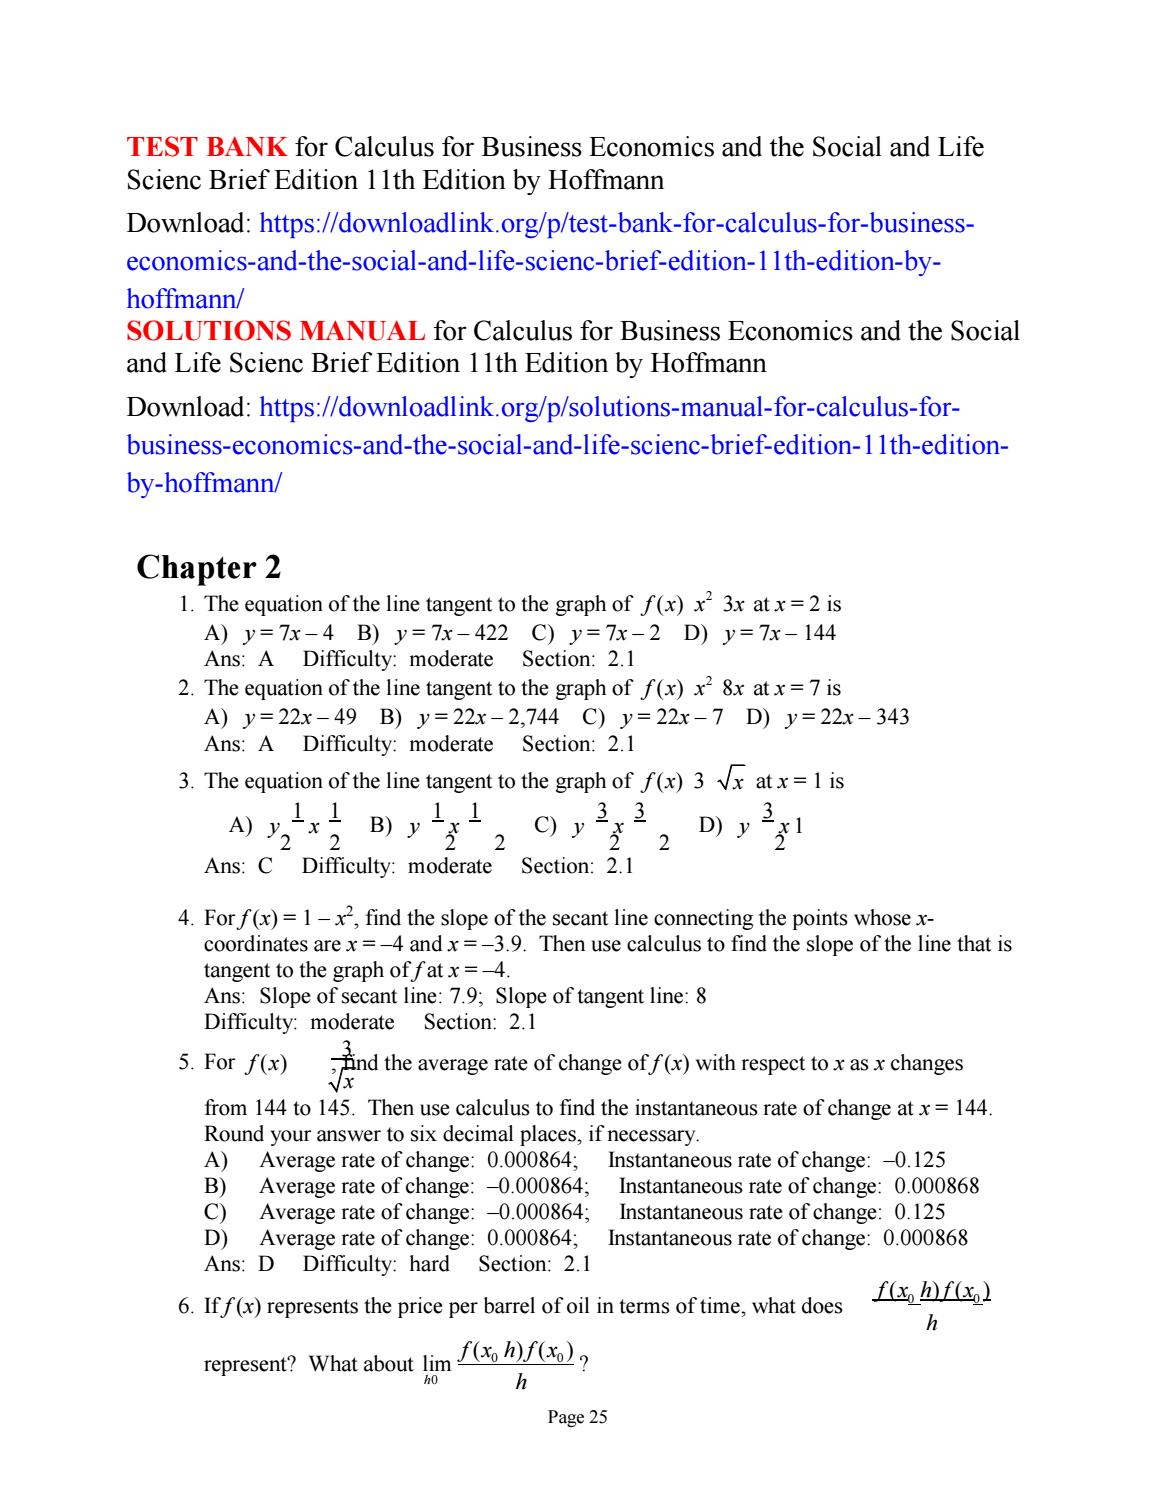 Test bank for calculus for business economics and the social and life  scienc brief edition 11th edit by intel11 - issuu